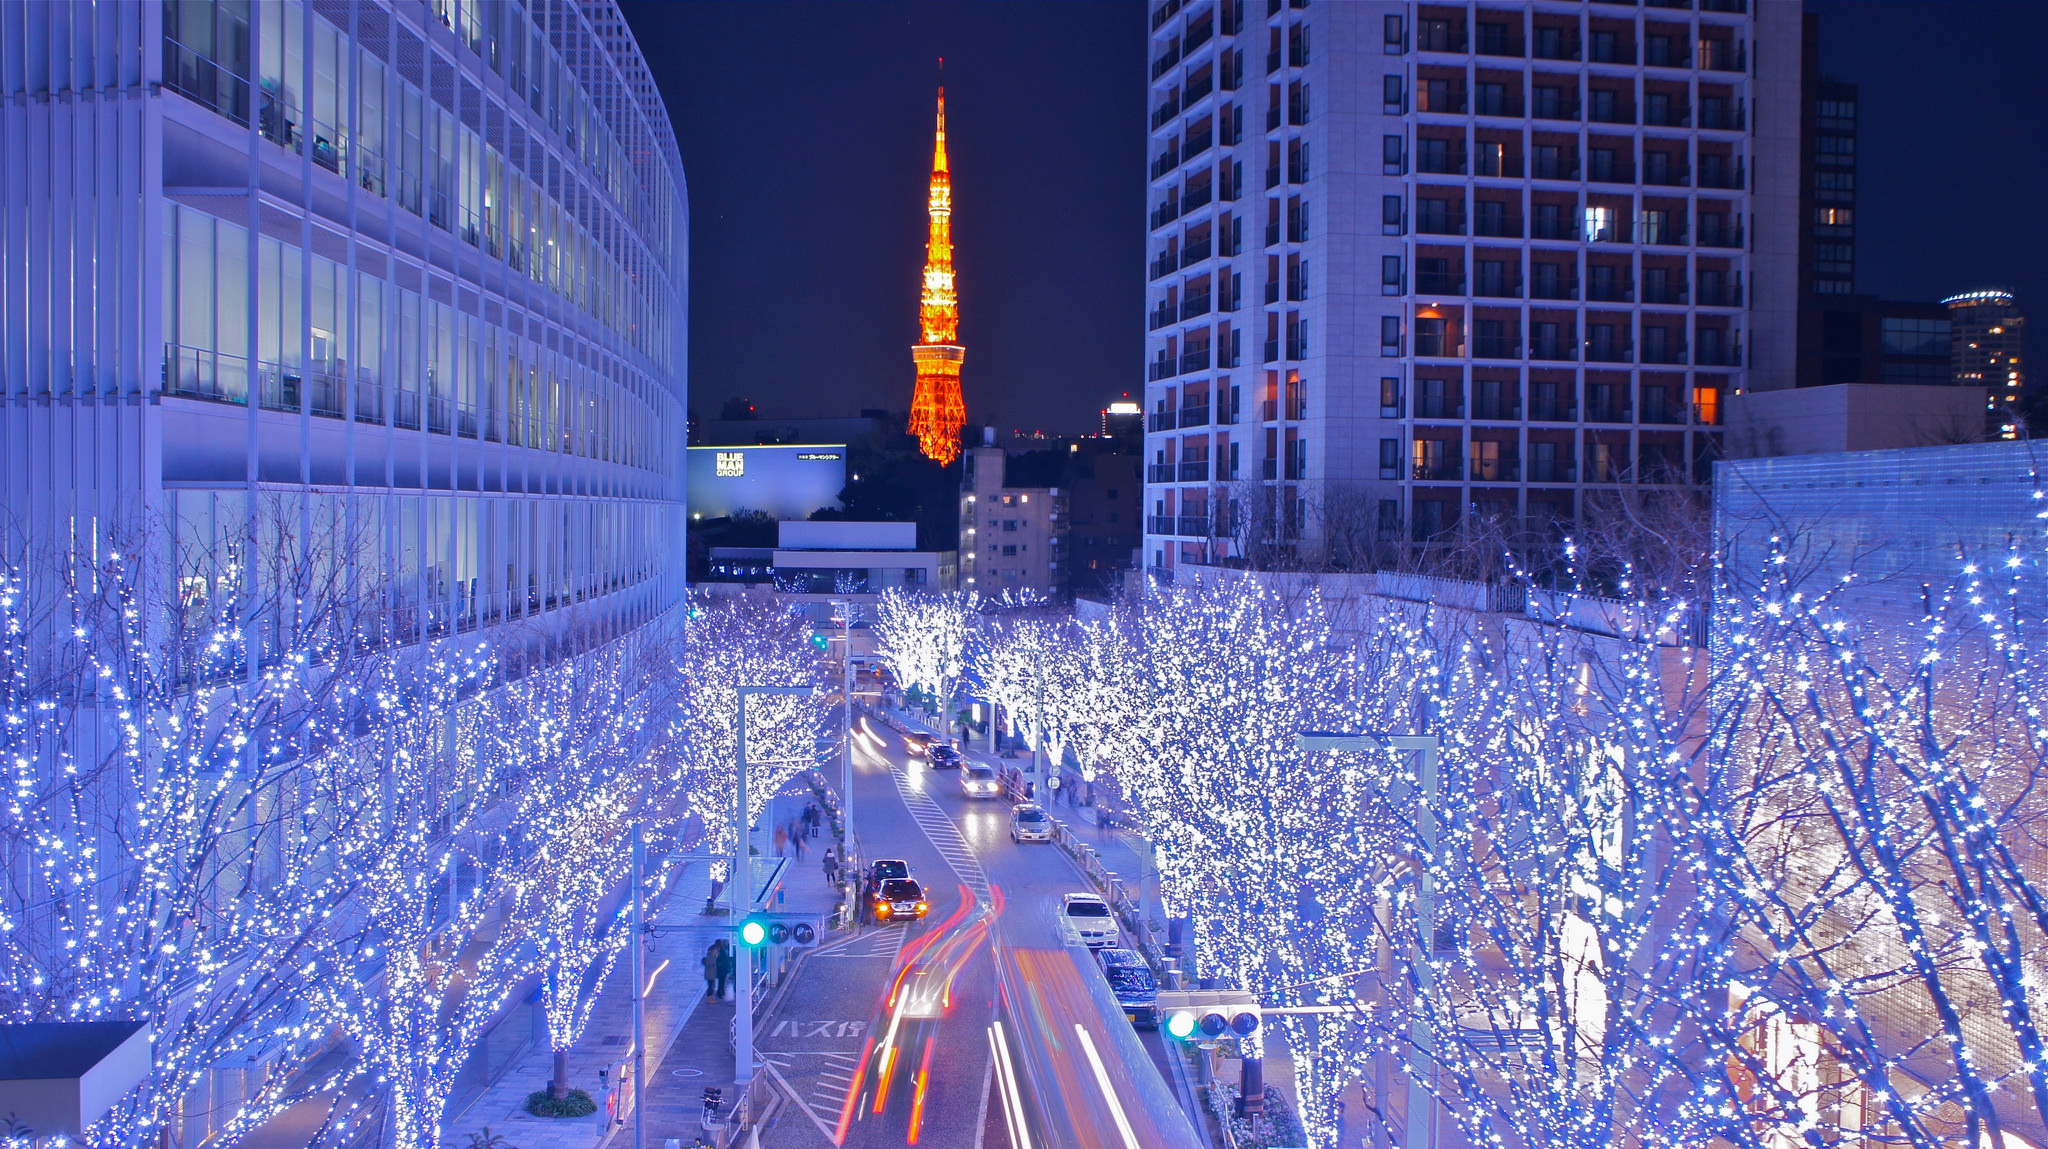 Christmas Illumination at the Roppongi Hills : Artelligent ...